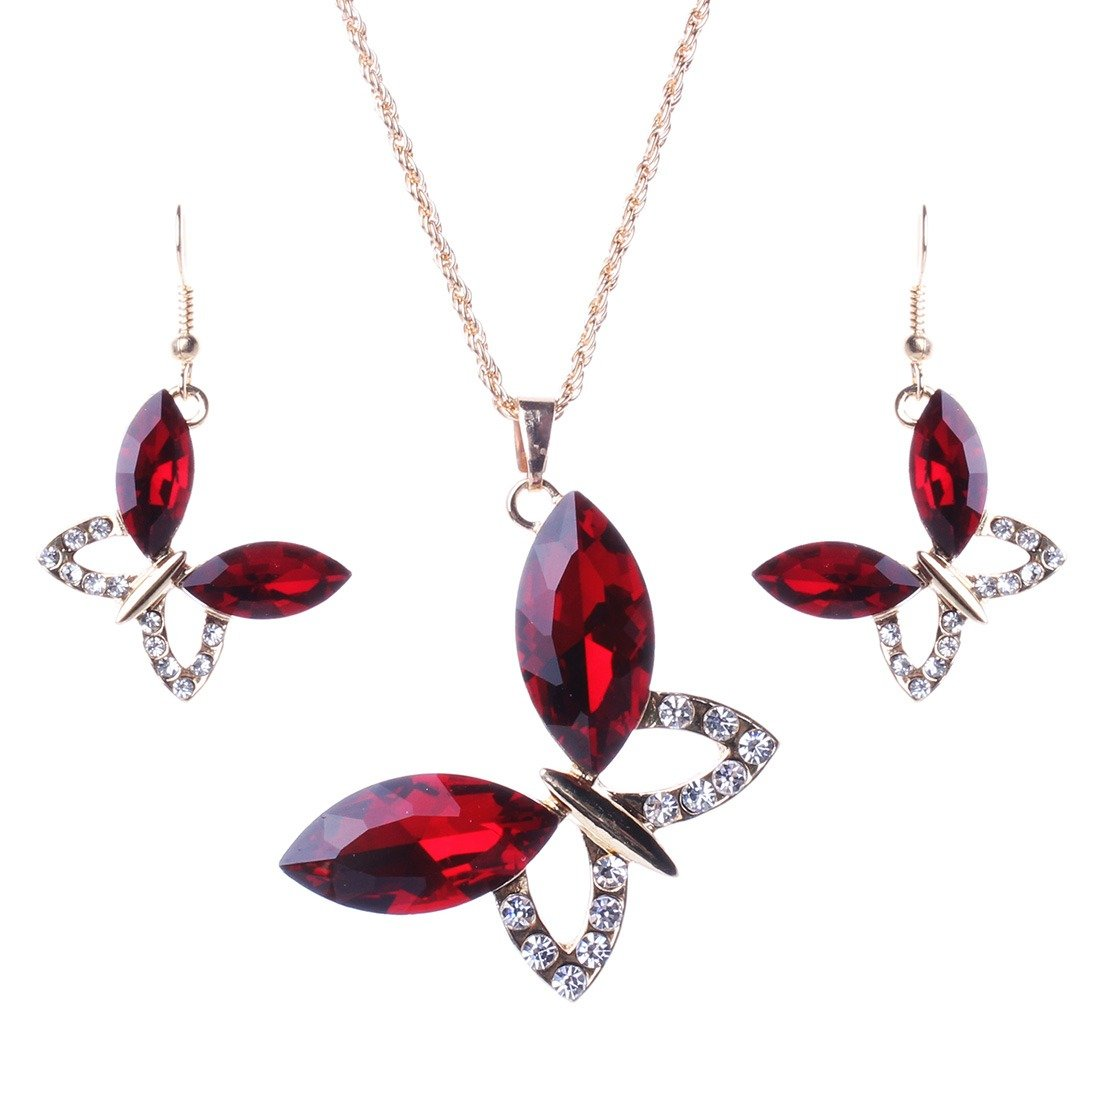 Qiyun Gold Chain Faceted Crystal Butterfly Pendant Long Necklace Earrings Set Or Cristal a Facettes Papillon Longue Collier W005N2297